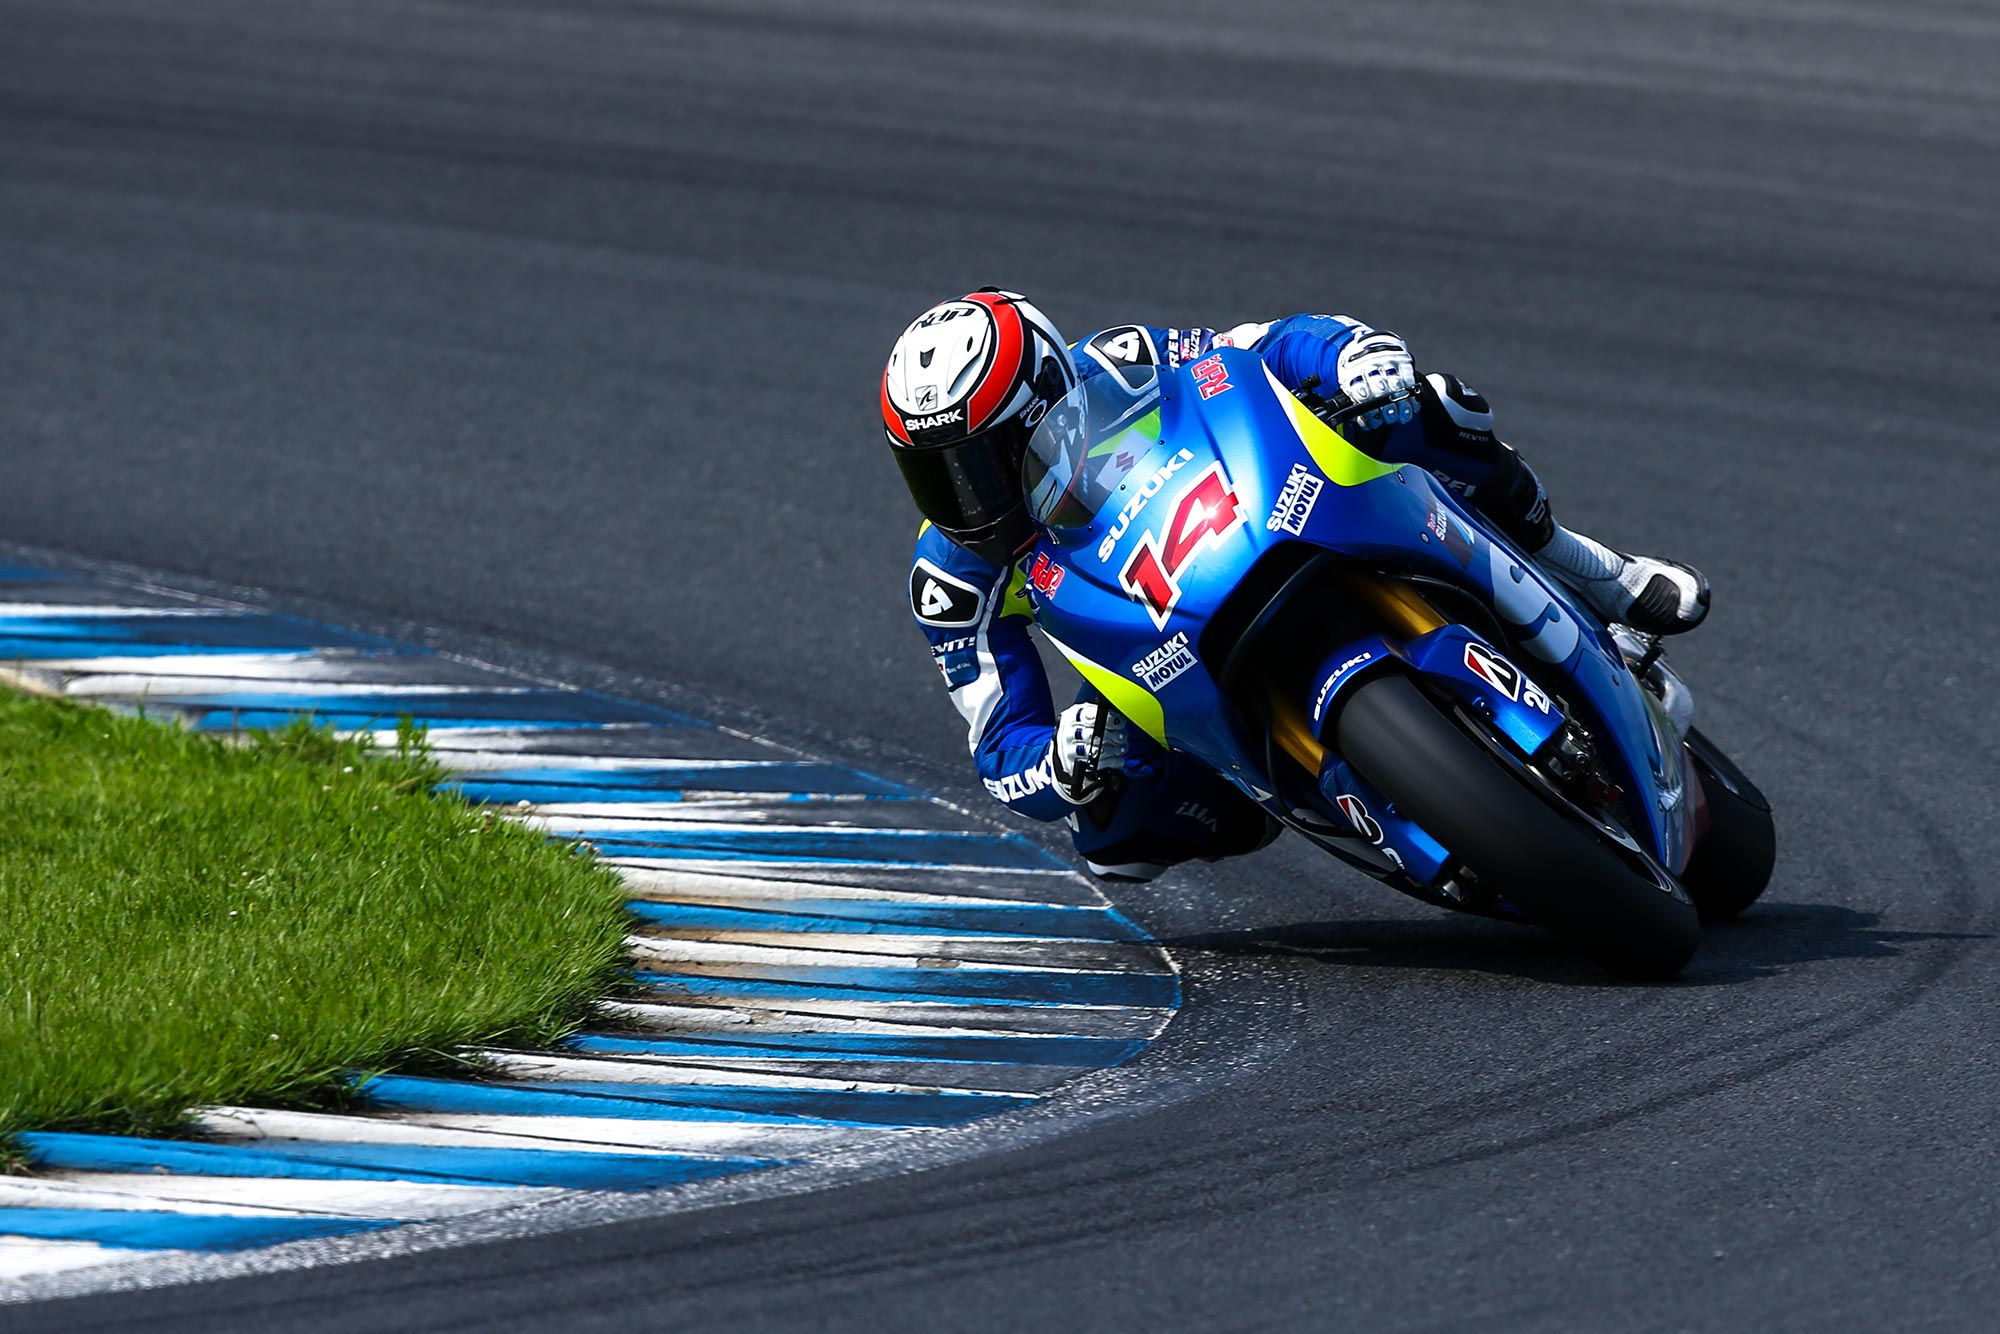 Motogp Suzuki Does Not Visualize About The Open Future Bikes Doctor